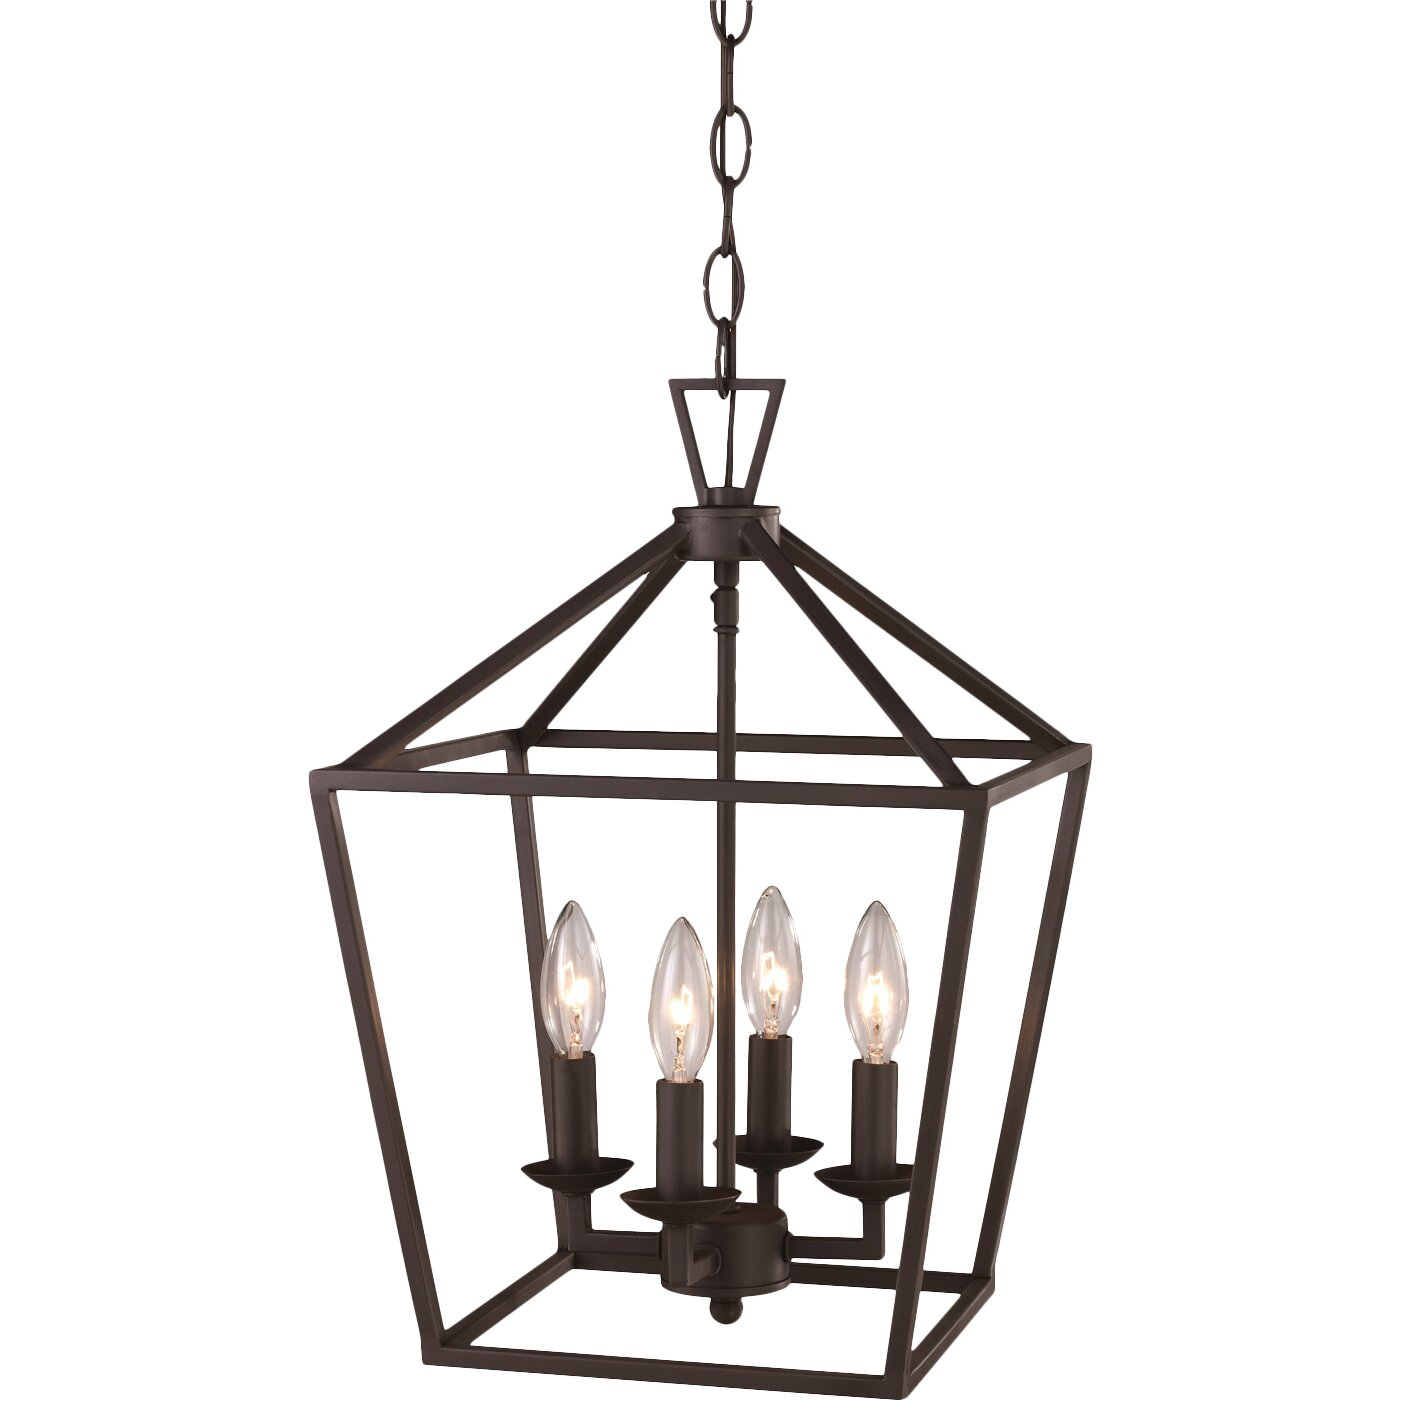 Foyer Lighting Sale : Laurel foundry modern farmhouse carmen light foyer